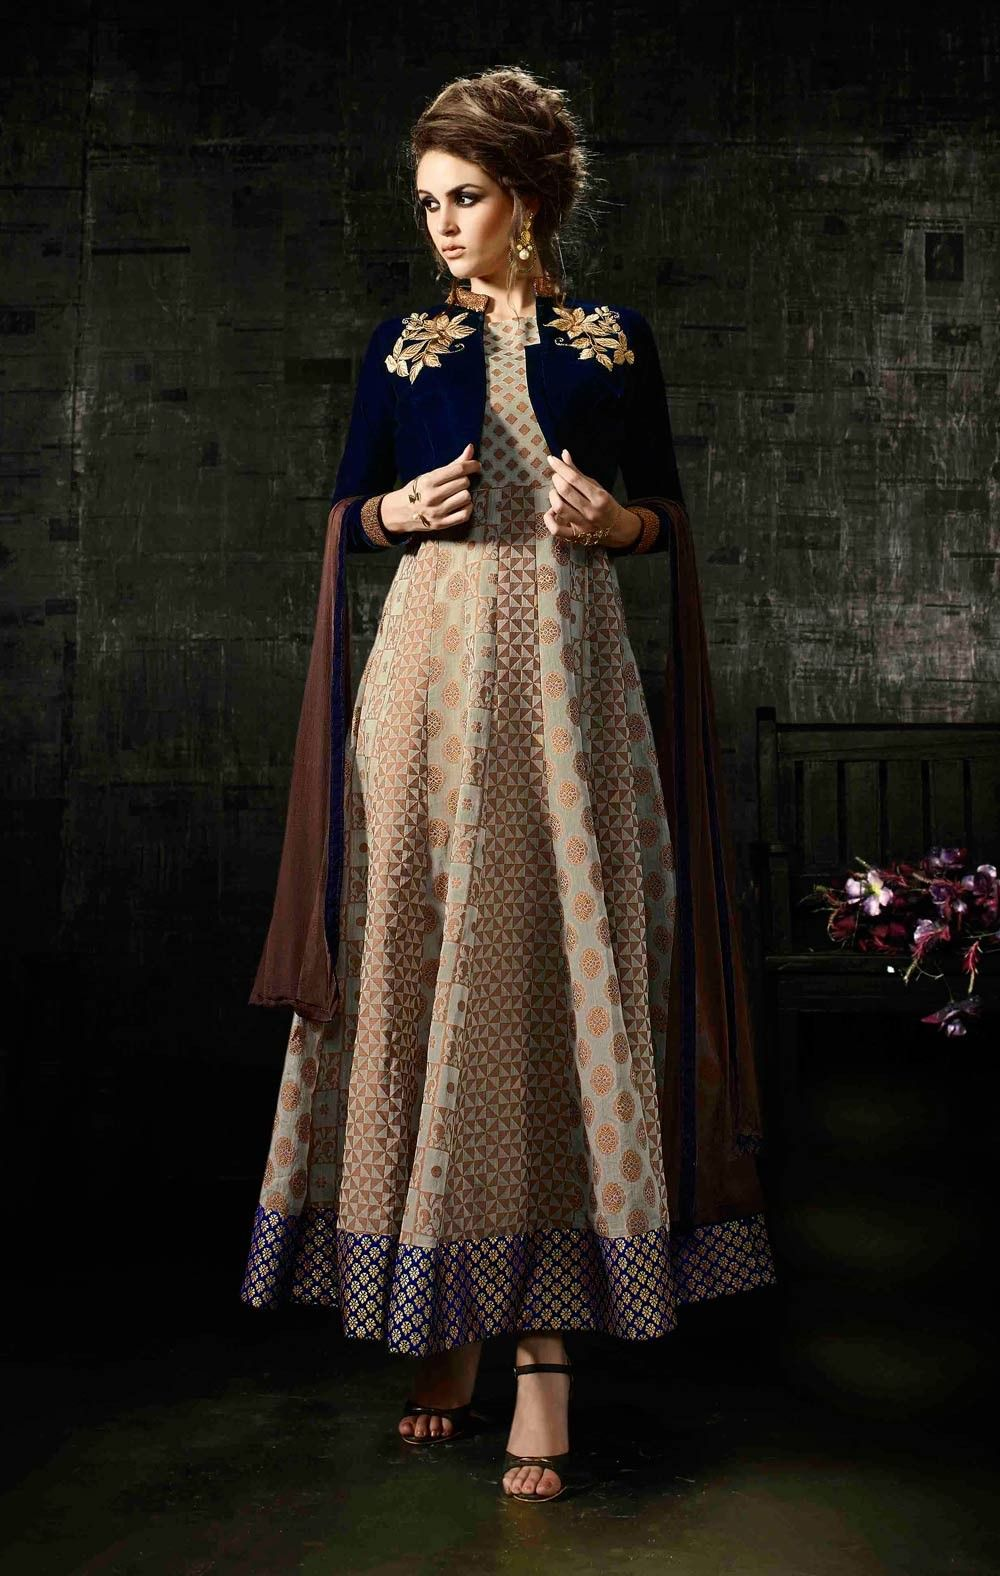 c6a61b0c48 Designer weddingwear ankle length Indian anarkali frock style suit with  velvet embroidered jacket